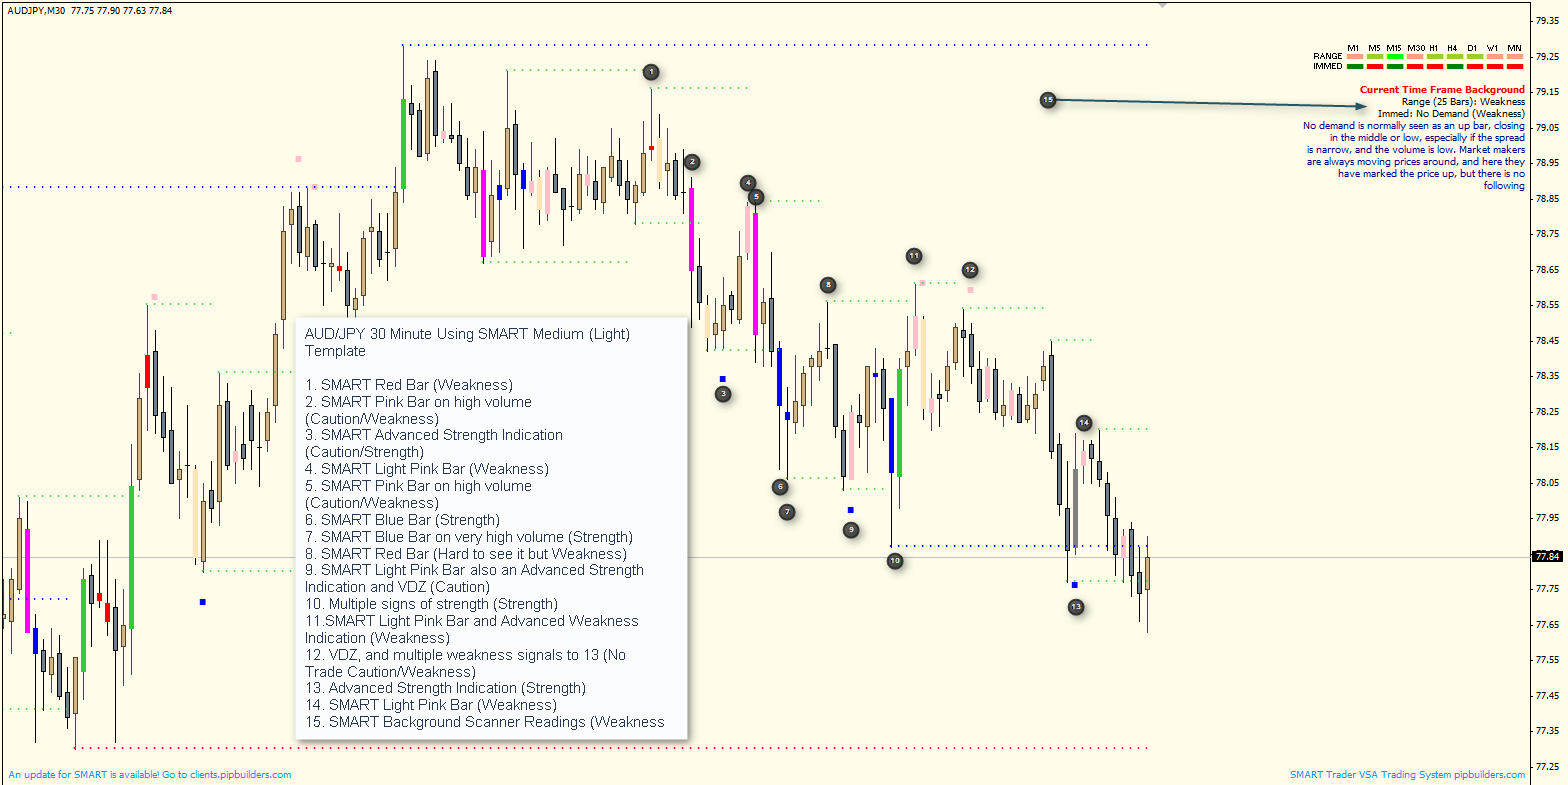 Quick Analysis of AUD/JPY Using SMART Trader Volume Spread Analysis Software